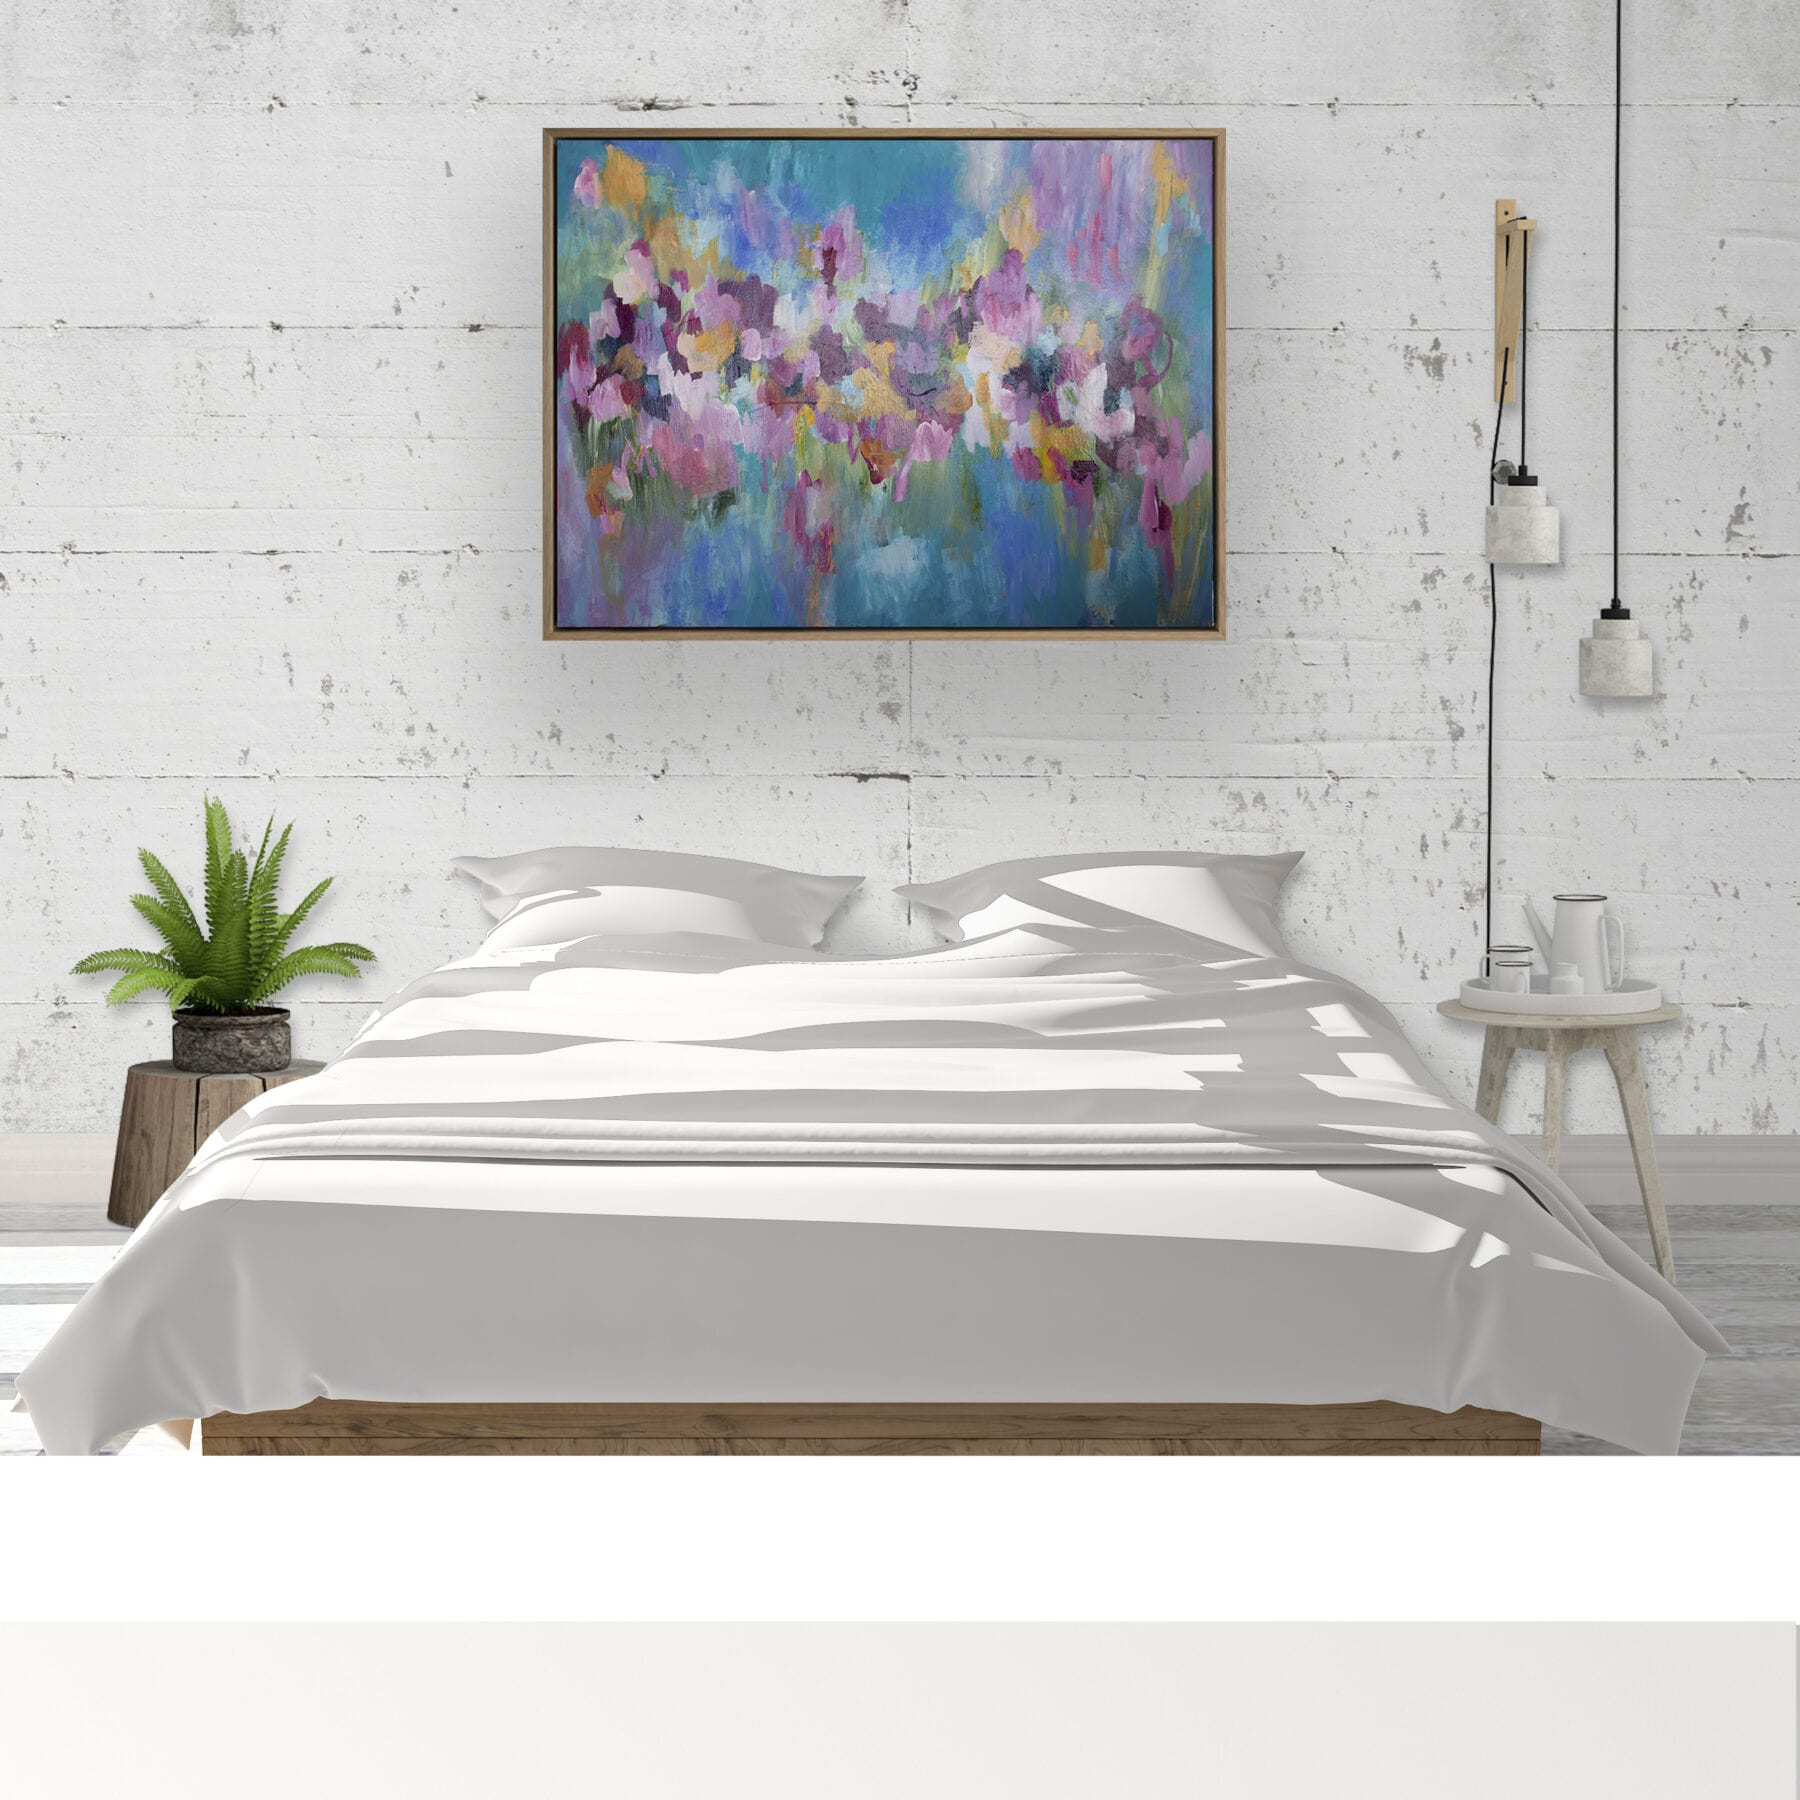 Tomorrow's Promise LifestyleWhite Bed Concrete Wall